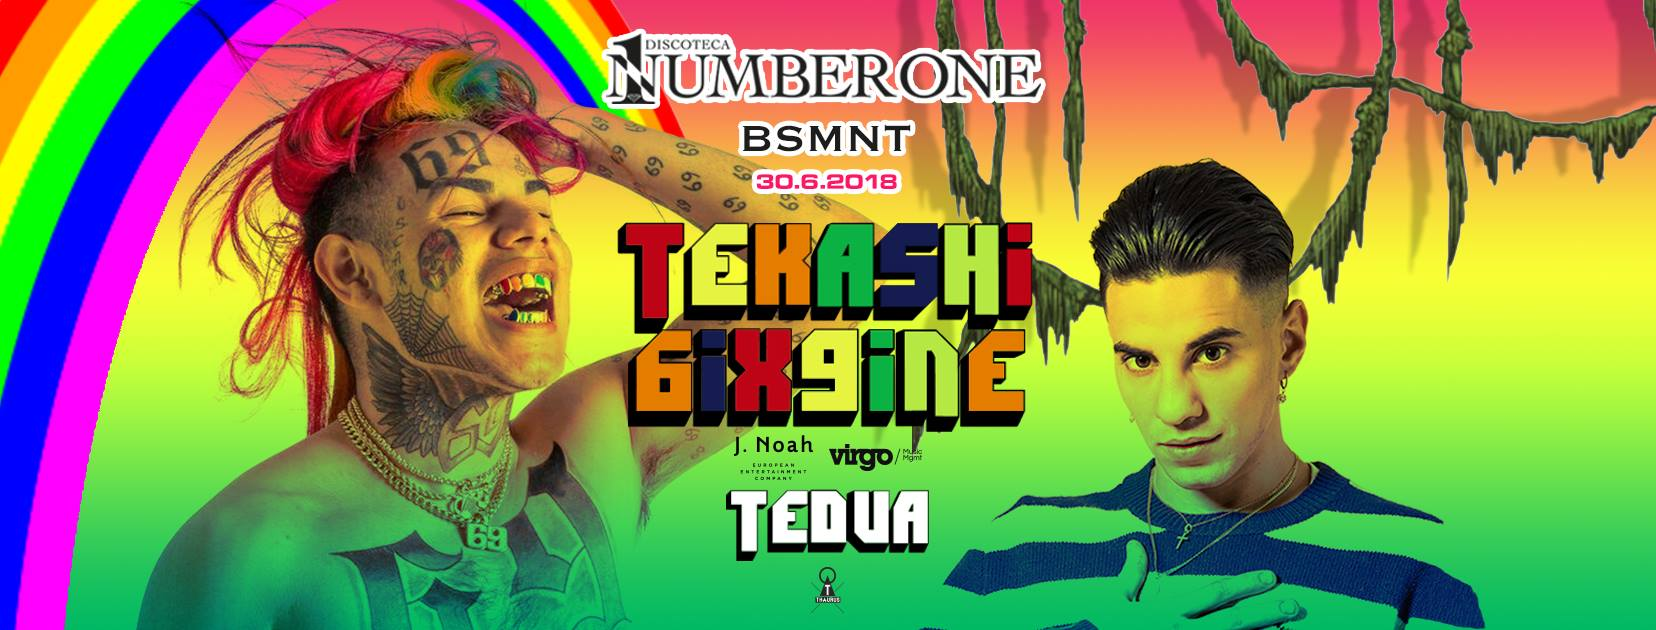 Number One & Basement – Tekashi 6ix9ine + Tedua